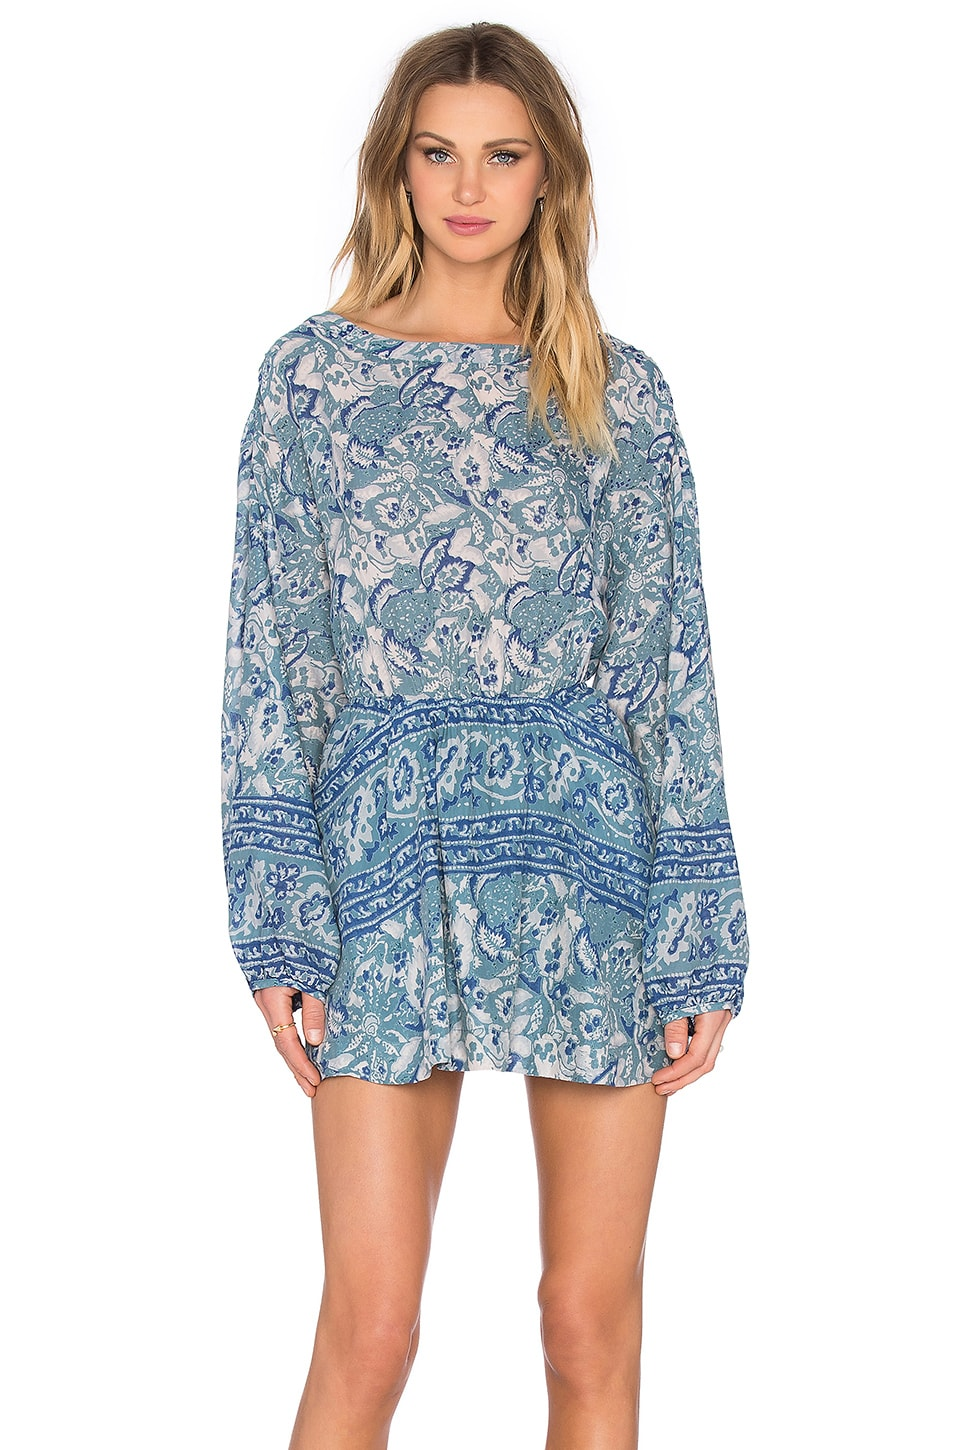 Free People Sun Printed Dress in Washed Blue | REVOLVE